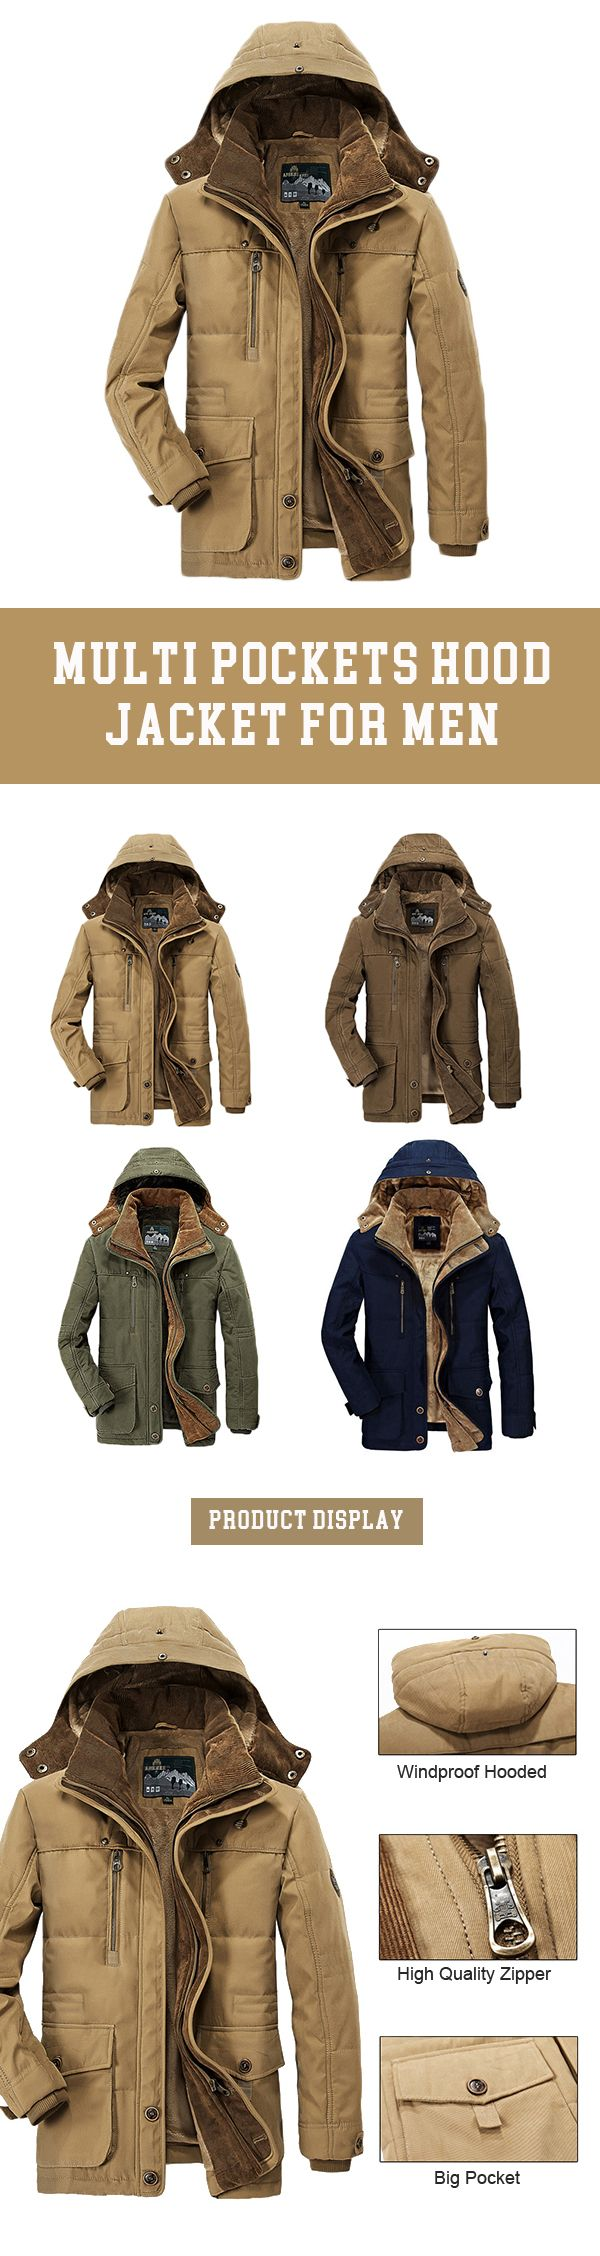 Enjoybuy Mens Fleeced Winter Thicken Warm Jacket Stand Collar Button Up Sherpa Lined Shearling Coats